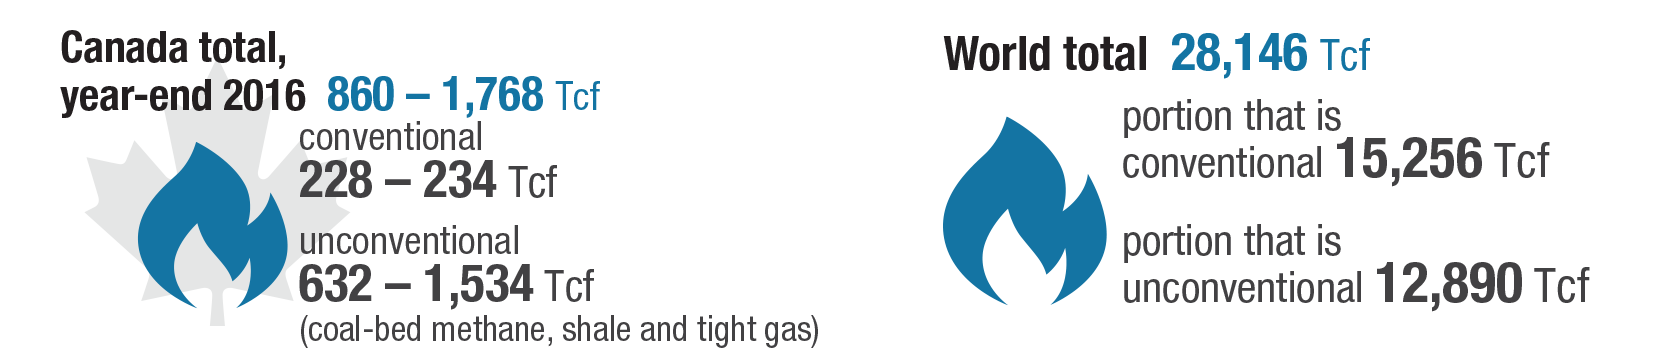 ng canada world total ressources 2018 Somalia Should Enter Natural Gas industry Not Oil